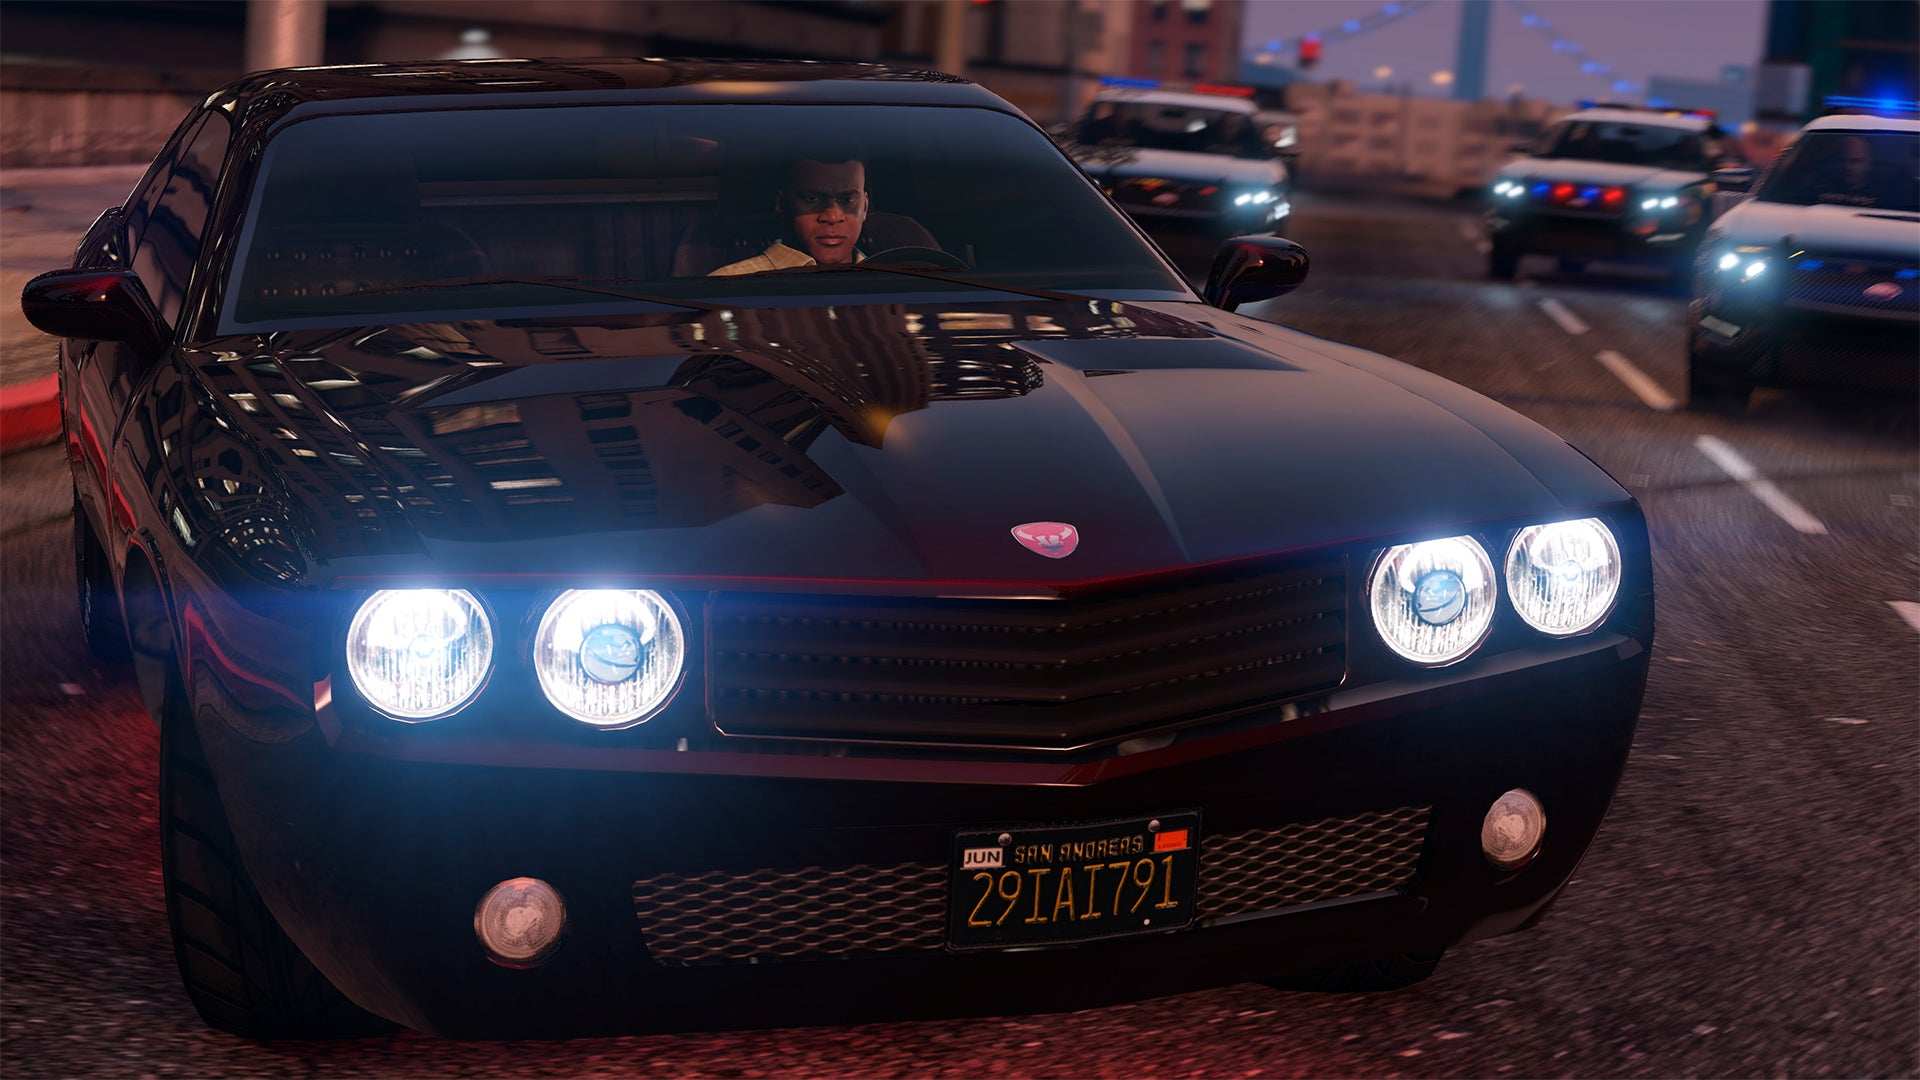 Grand Theft Auto VBenchmarked: Pushing PC Graphics To The Limit